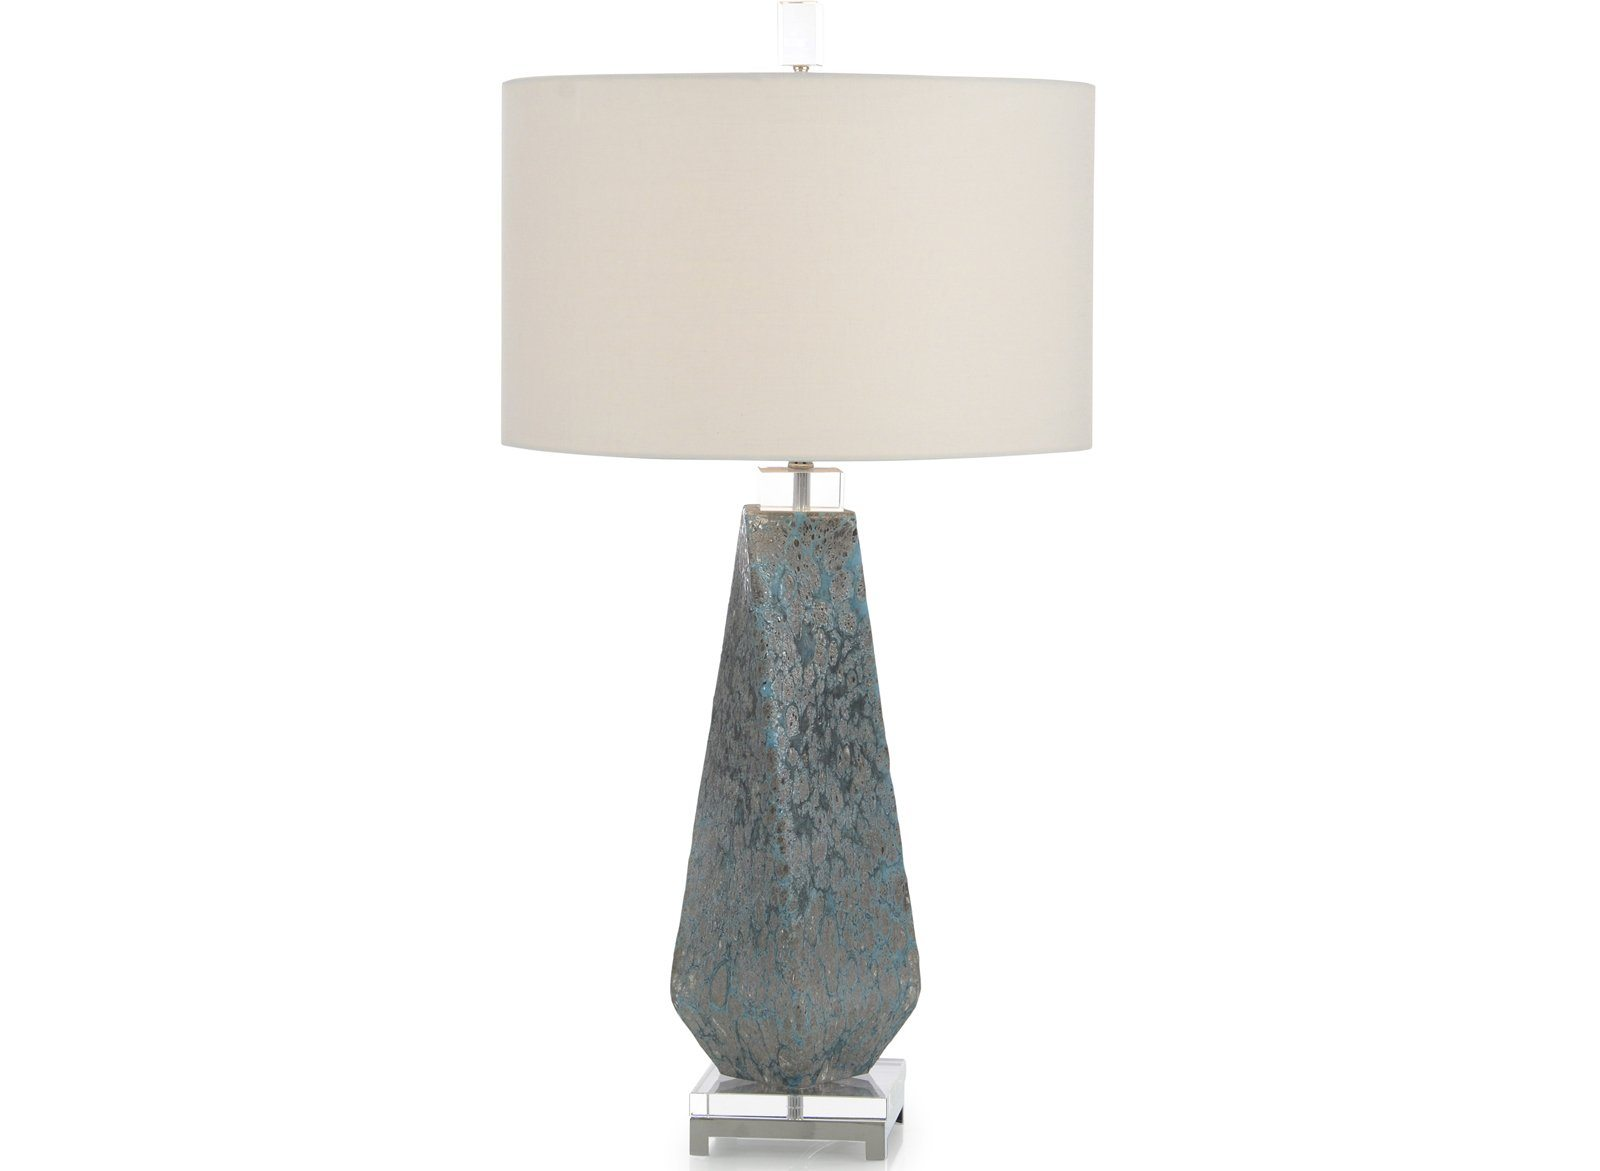 Shades of Blue Lamp With A Twist